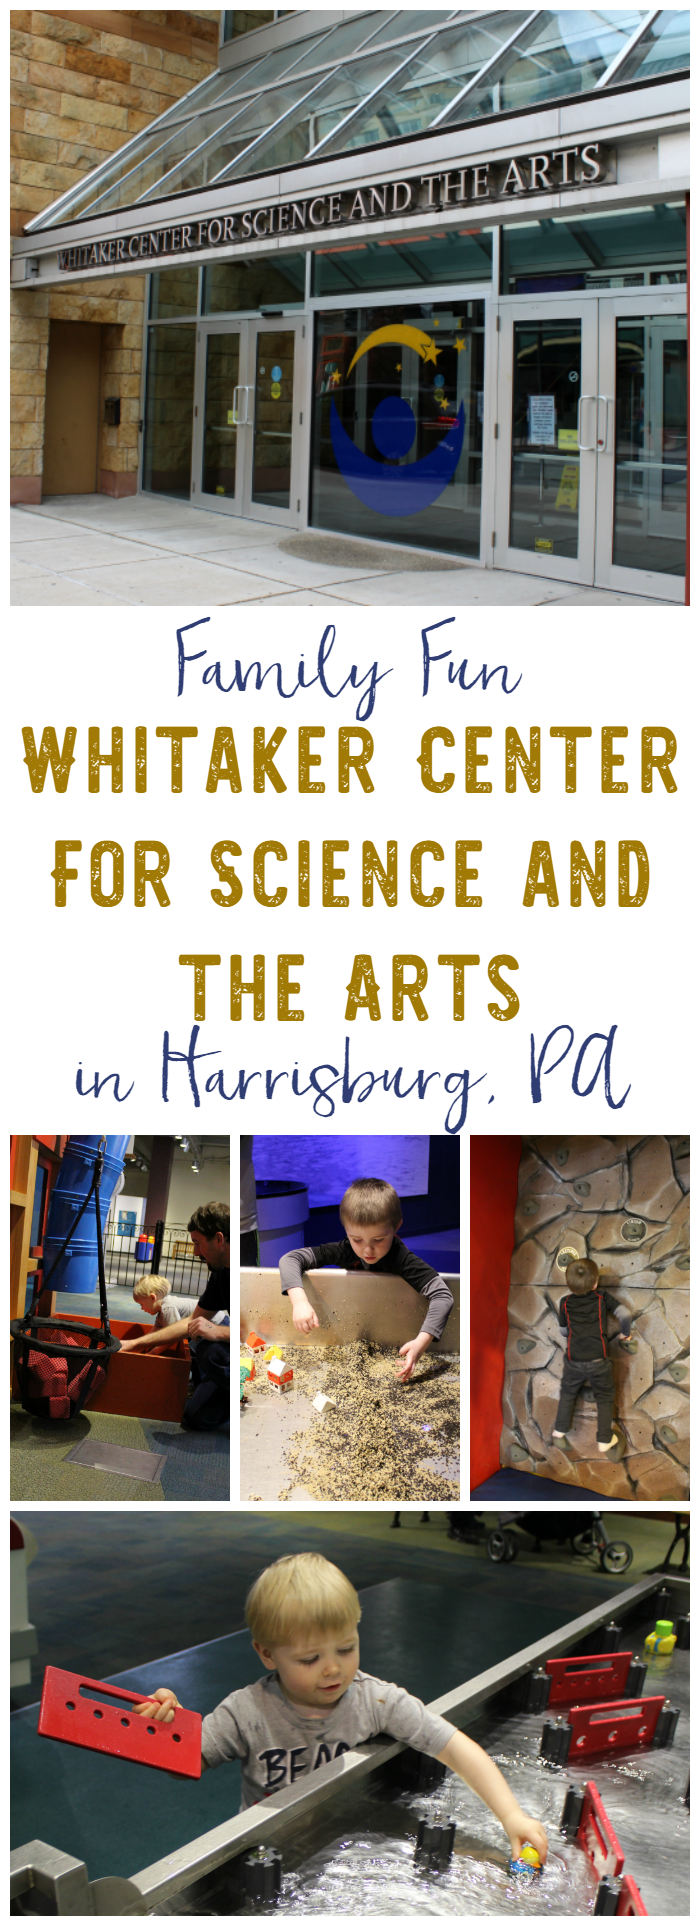 The Whitaker Center in Harrisburg, PA is a science center, theater, and cinema in one! Fun for the entire family!